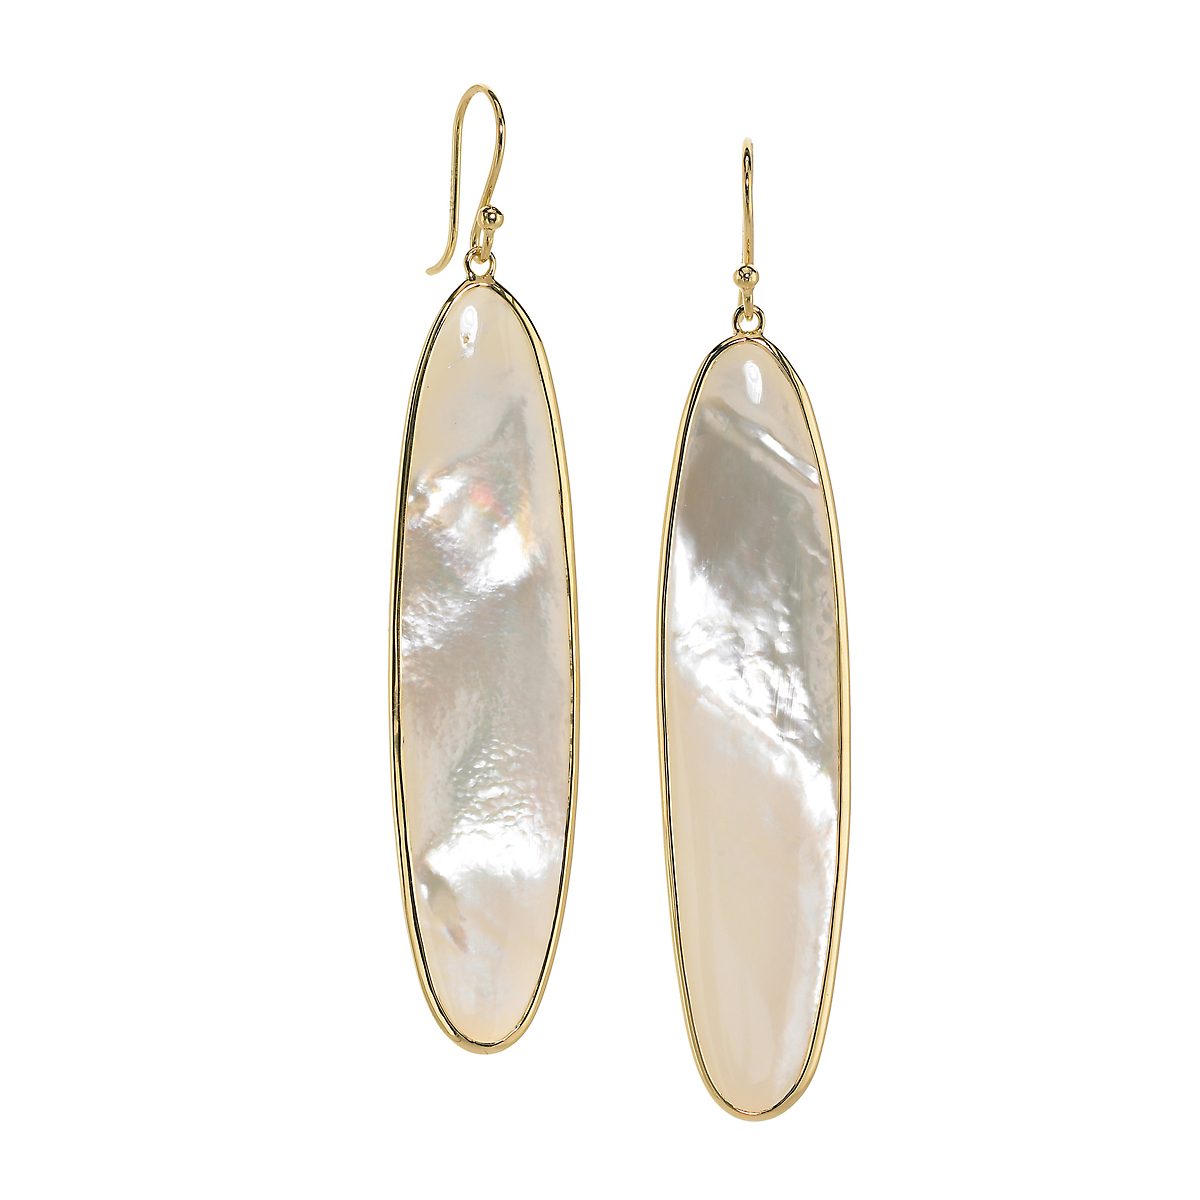 Elizabeth Showers Mother of Pearl Long Oval Earrings